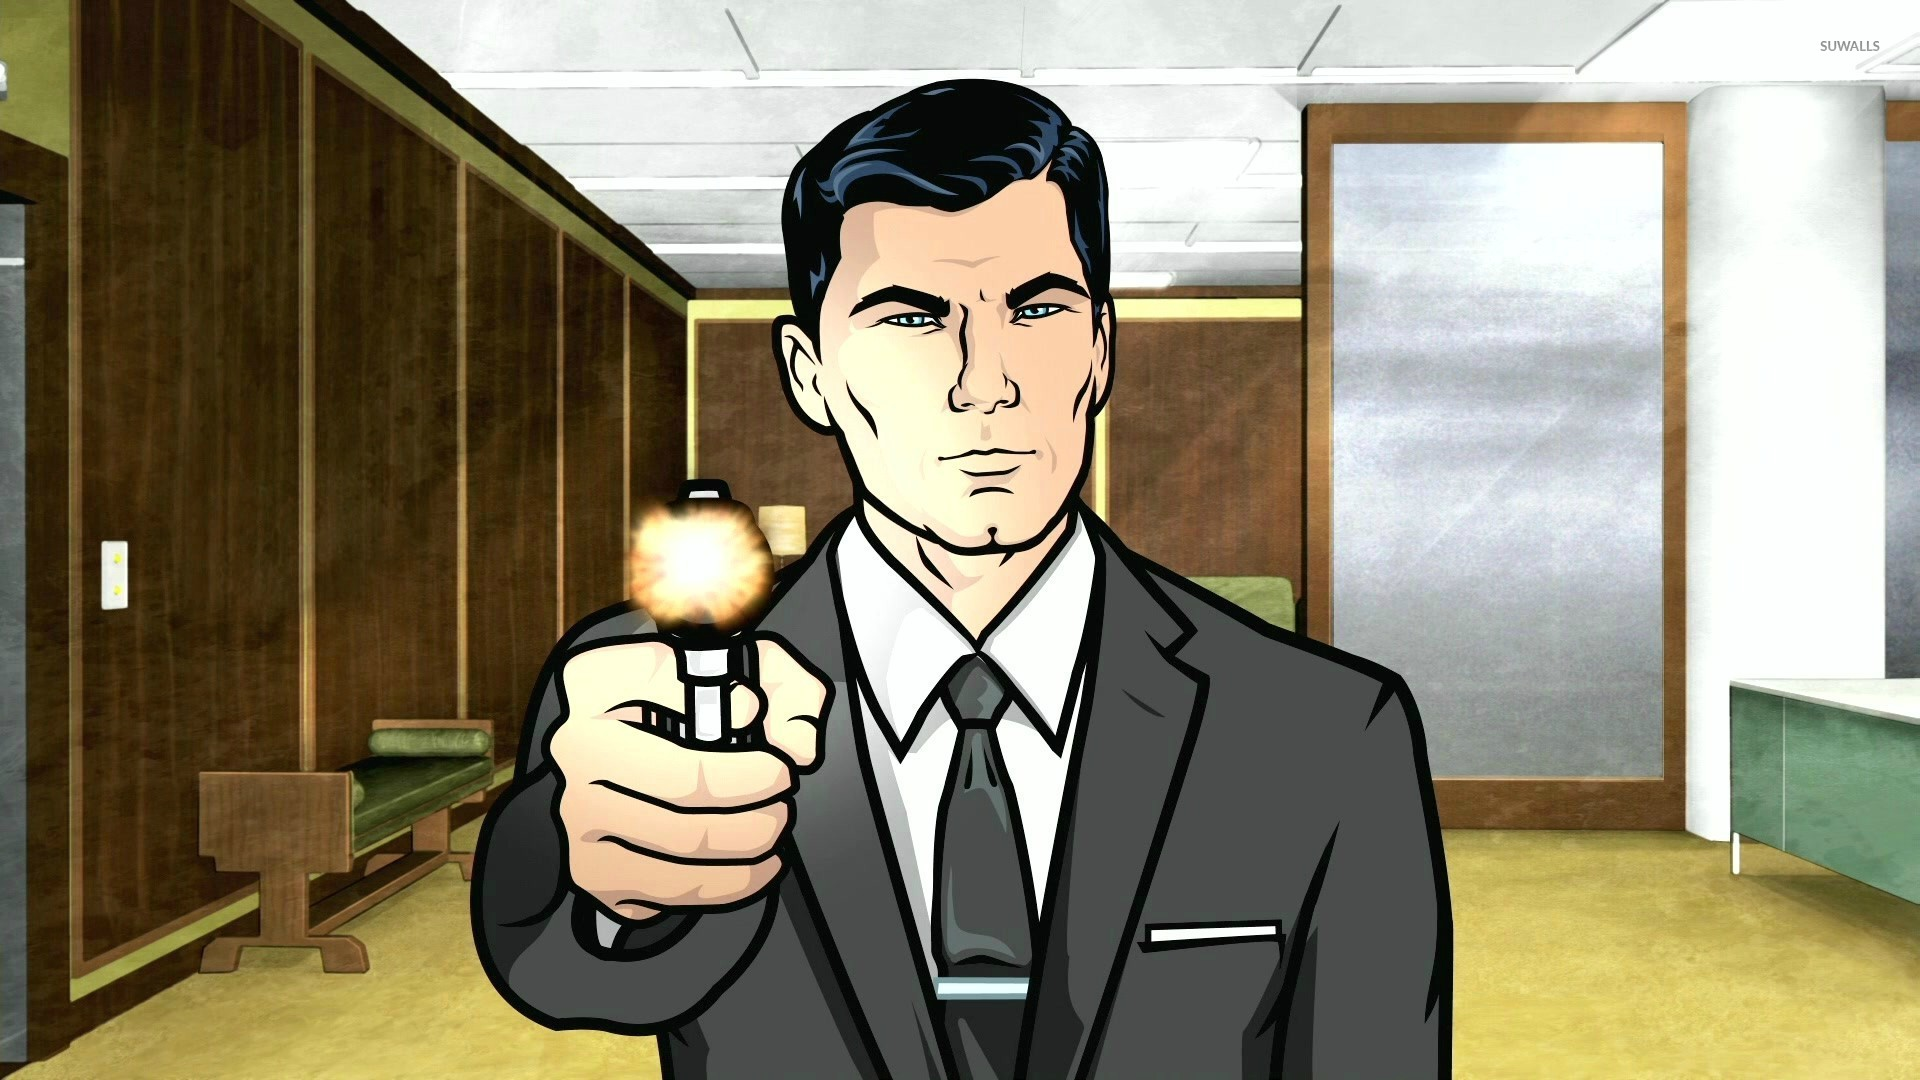 Free Download Wallpapers Of Friendship Quotes Sterling Archer Wallpaper Cartoon Wallpapers 28635